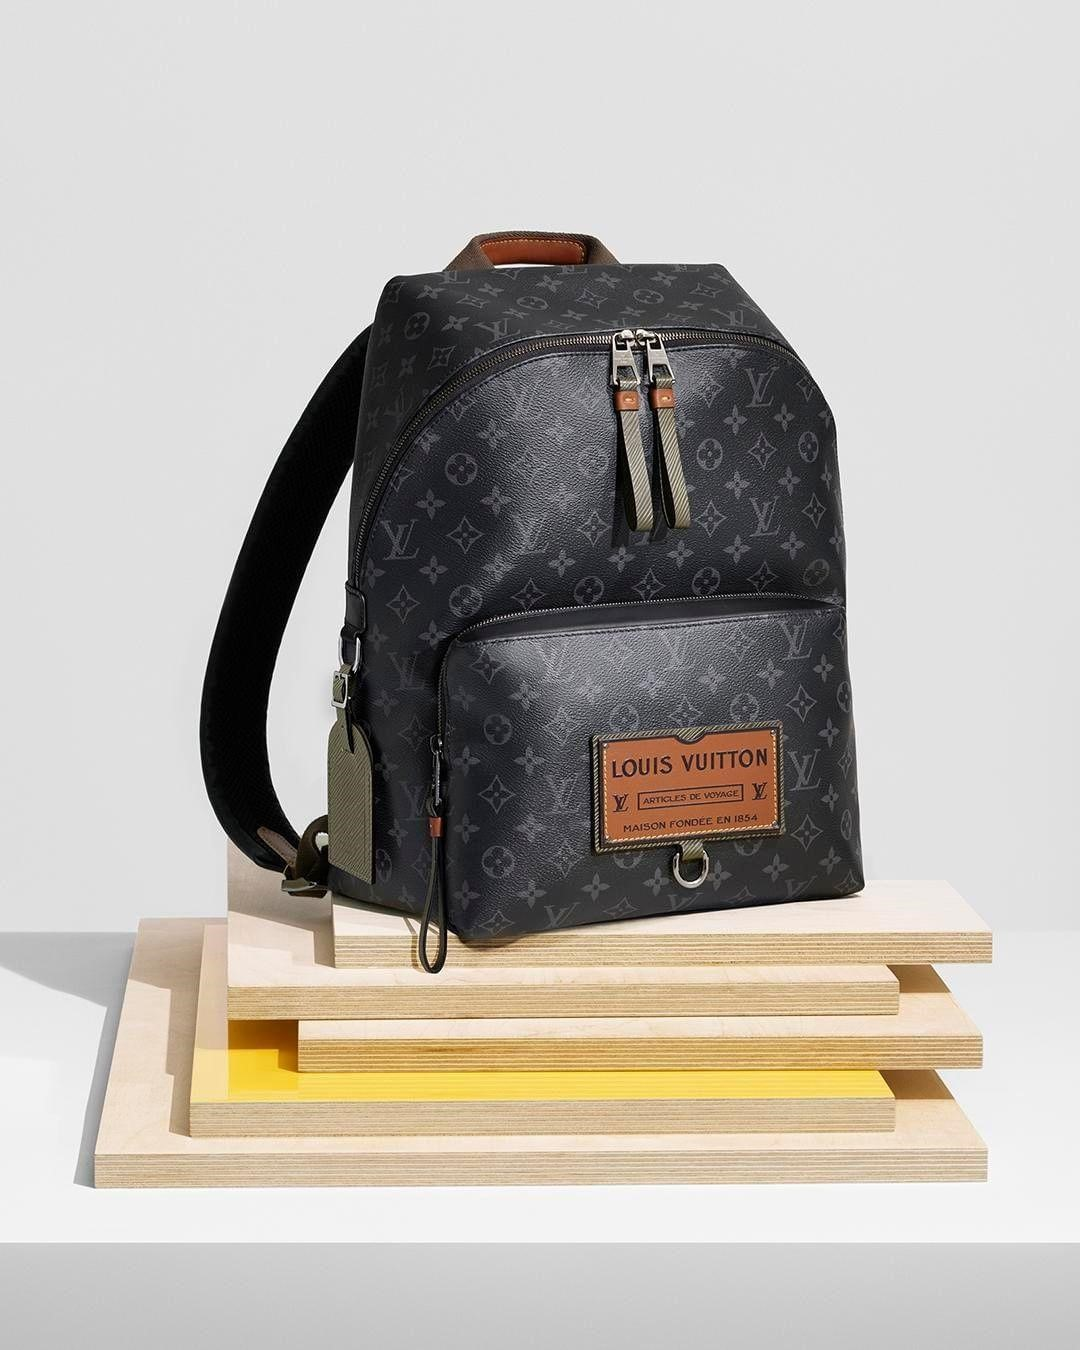 Louis Vuitton lança tenda e mochilas